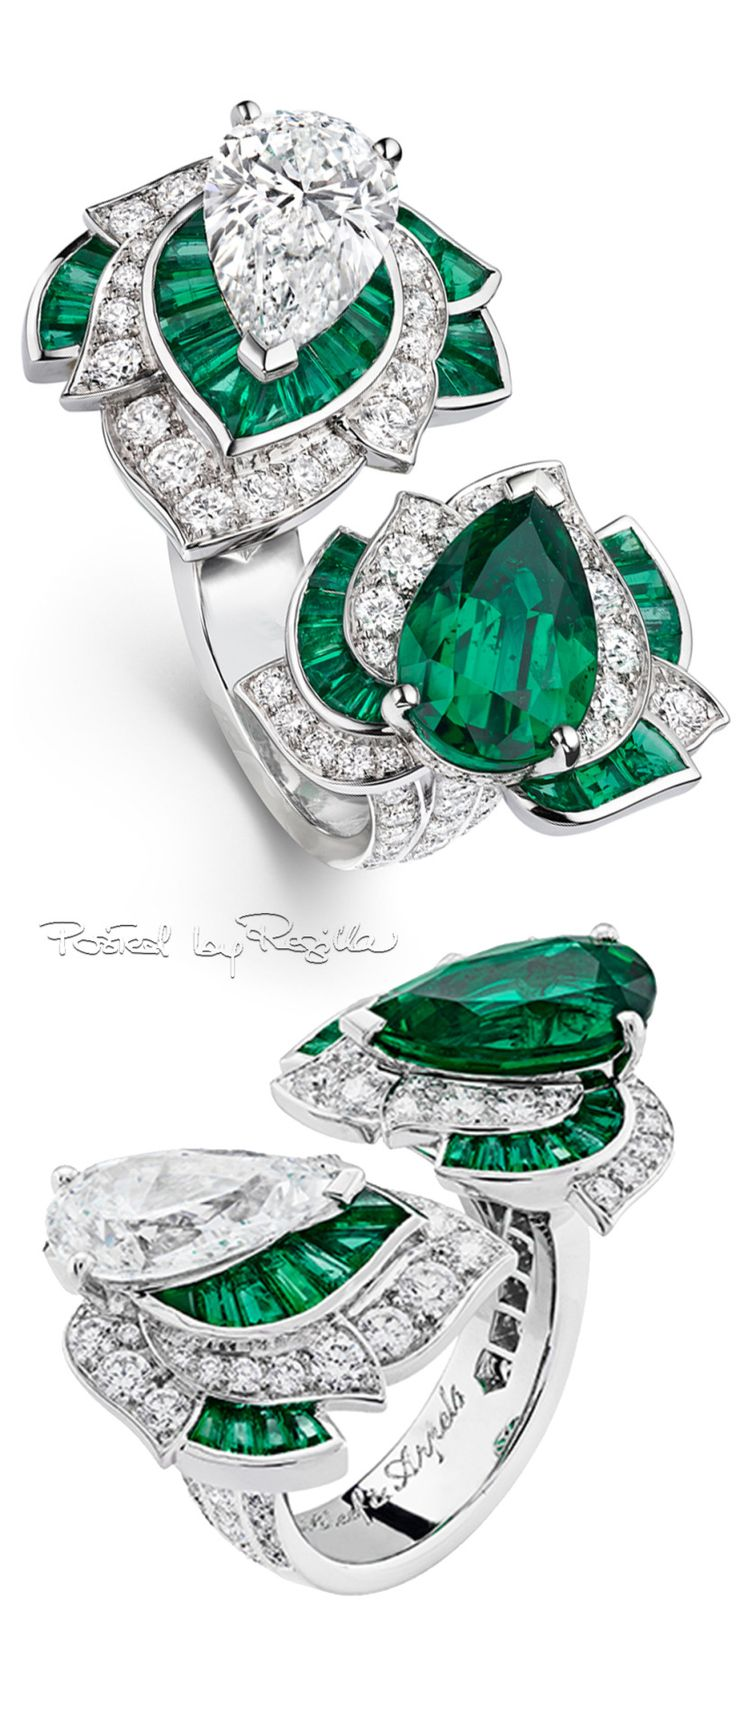 OMG! OMG! OMG! So hard to decide between this over the top ring by Van Cleef & Arpels and Jackie Kennedy's engagement ring. What's a girl to do?